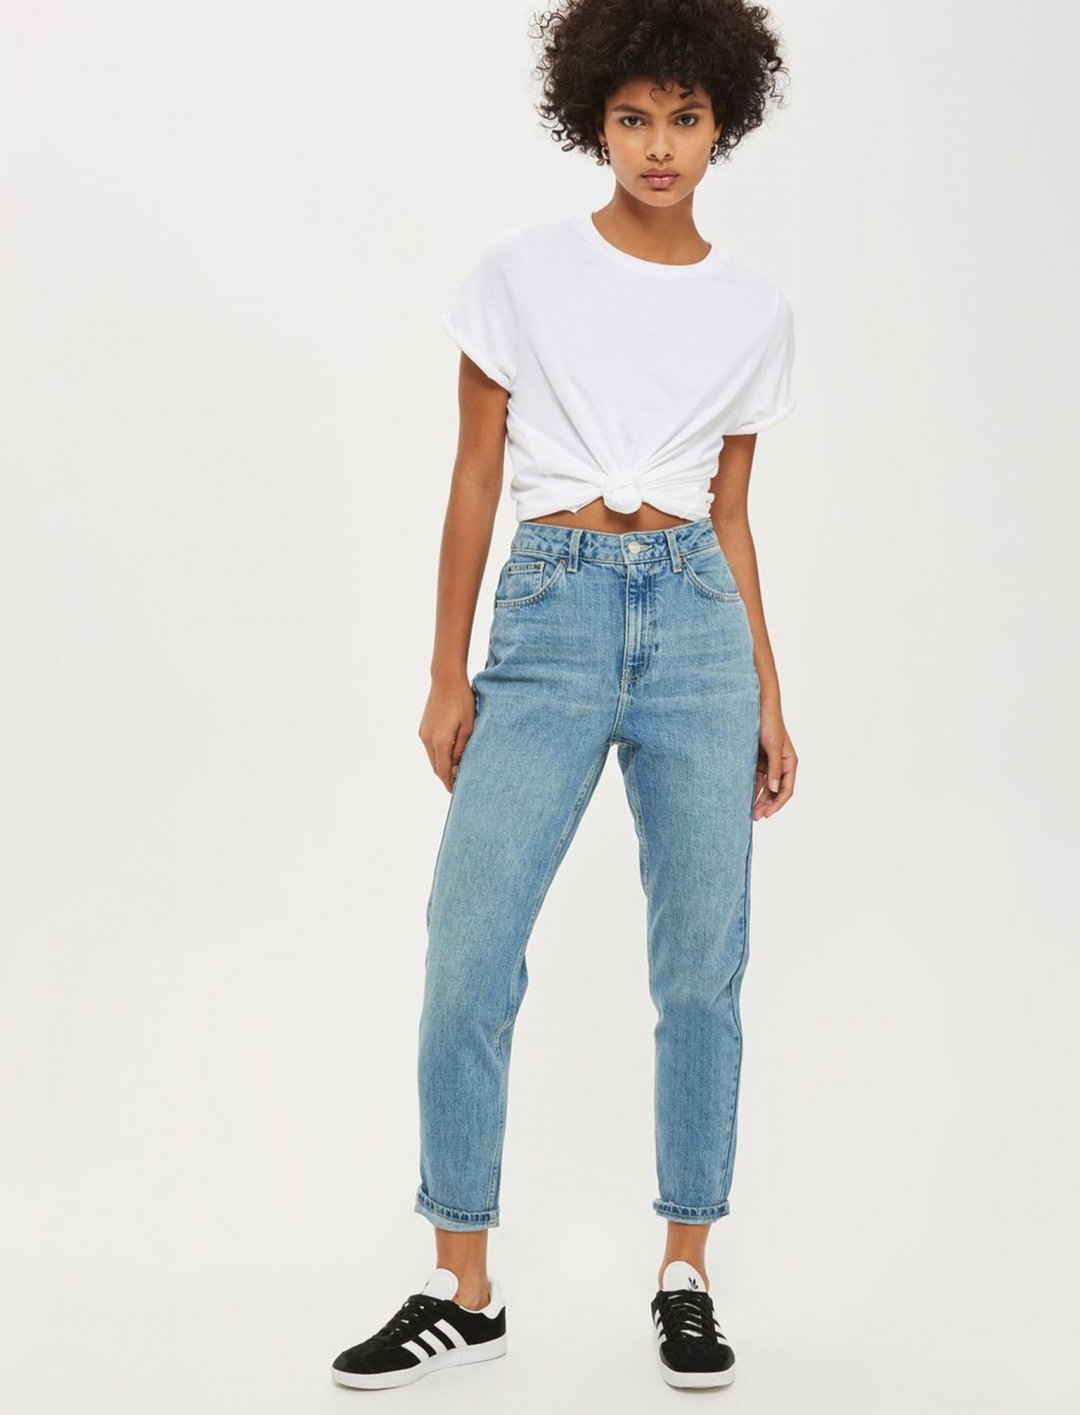 """Vintage Blue Mom Jeans {""""id"""":5,""""product_section_id"""":1,""""name"""":""""Clothing"""",""""order"""":5} Moto"""